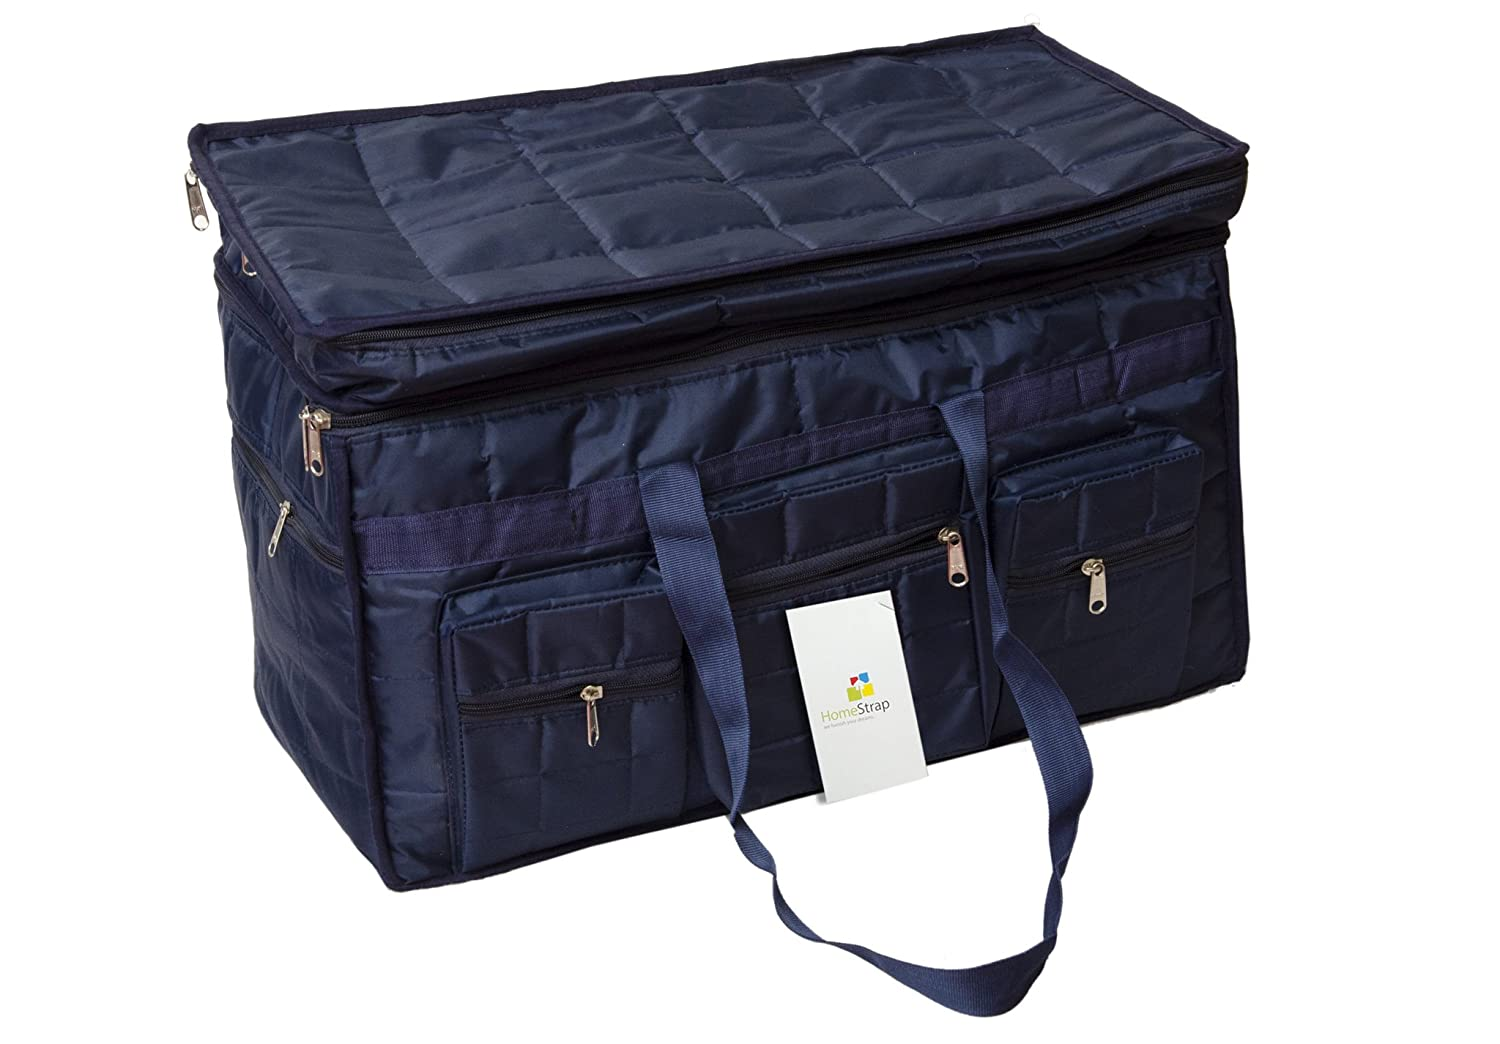 3e586fd1fdd Duffle Bag  Buy Duffle Bag online at best prices in India - Amazon.in